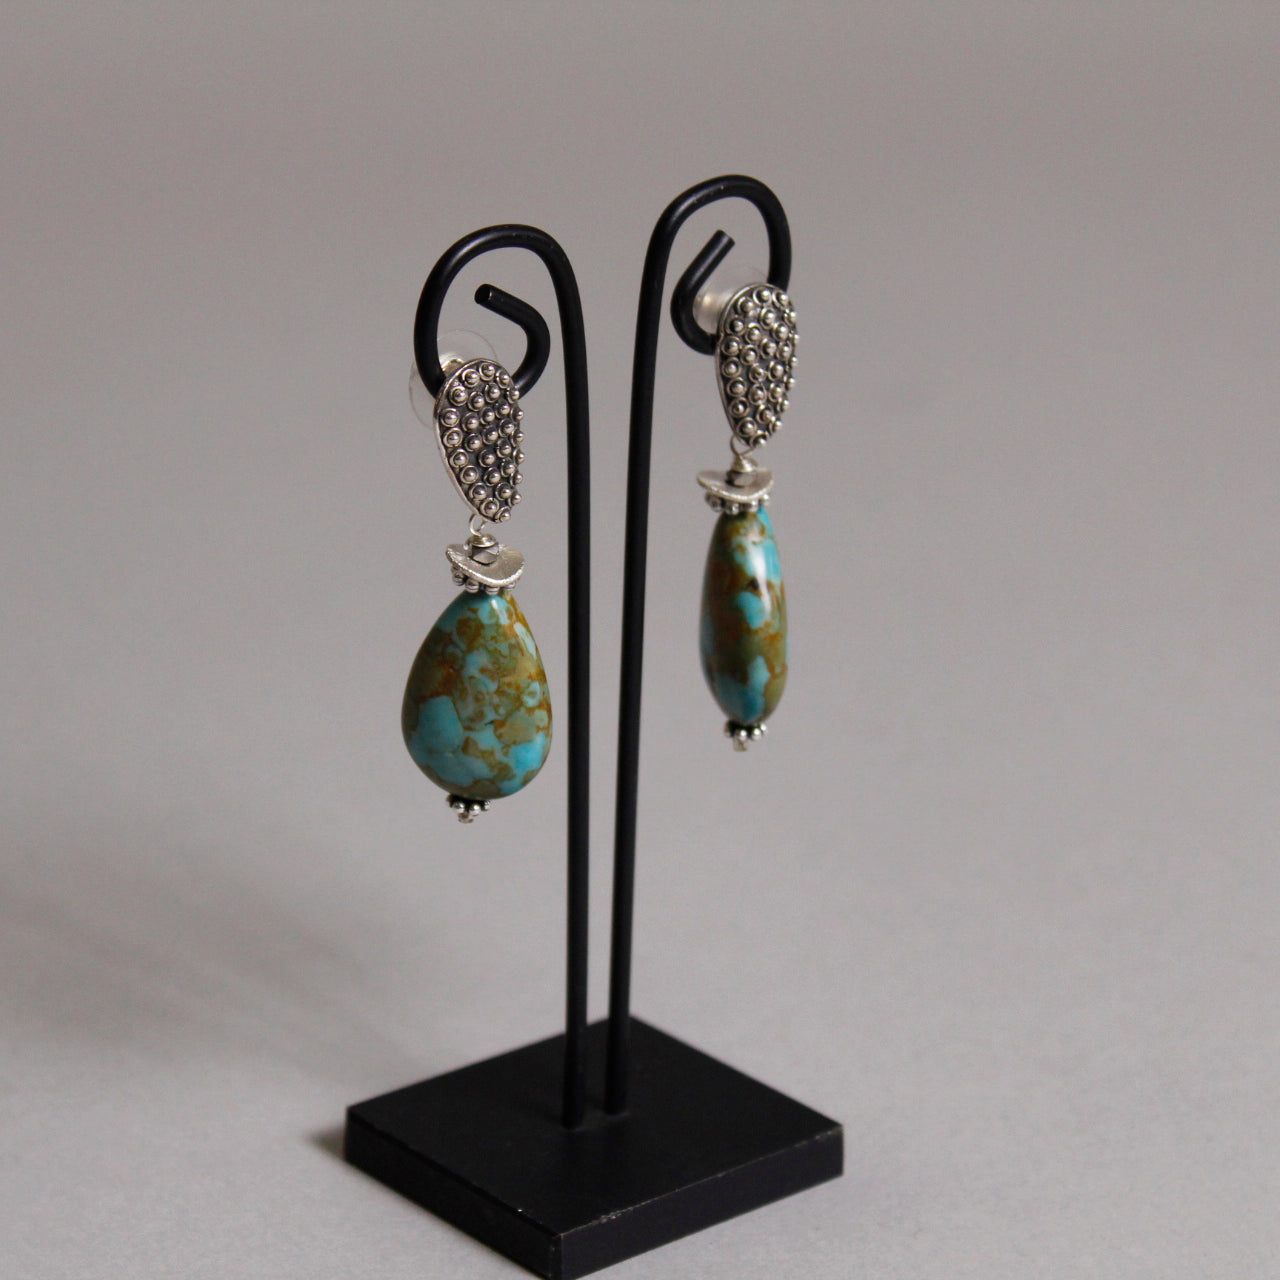 Jill Duzan Earrings At Jophiel